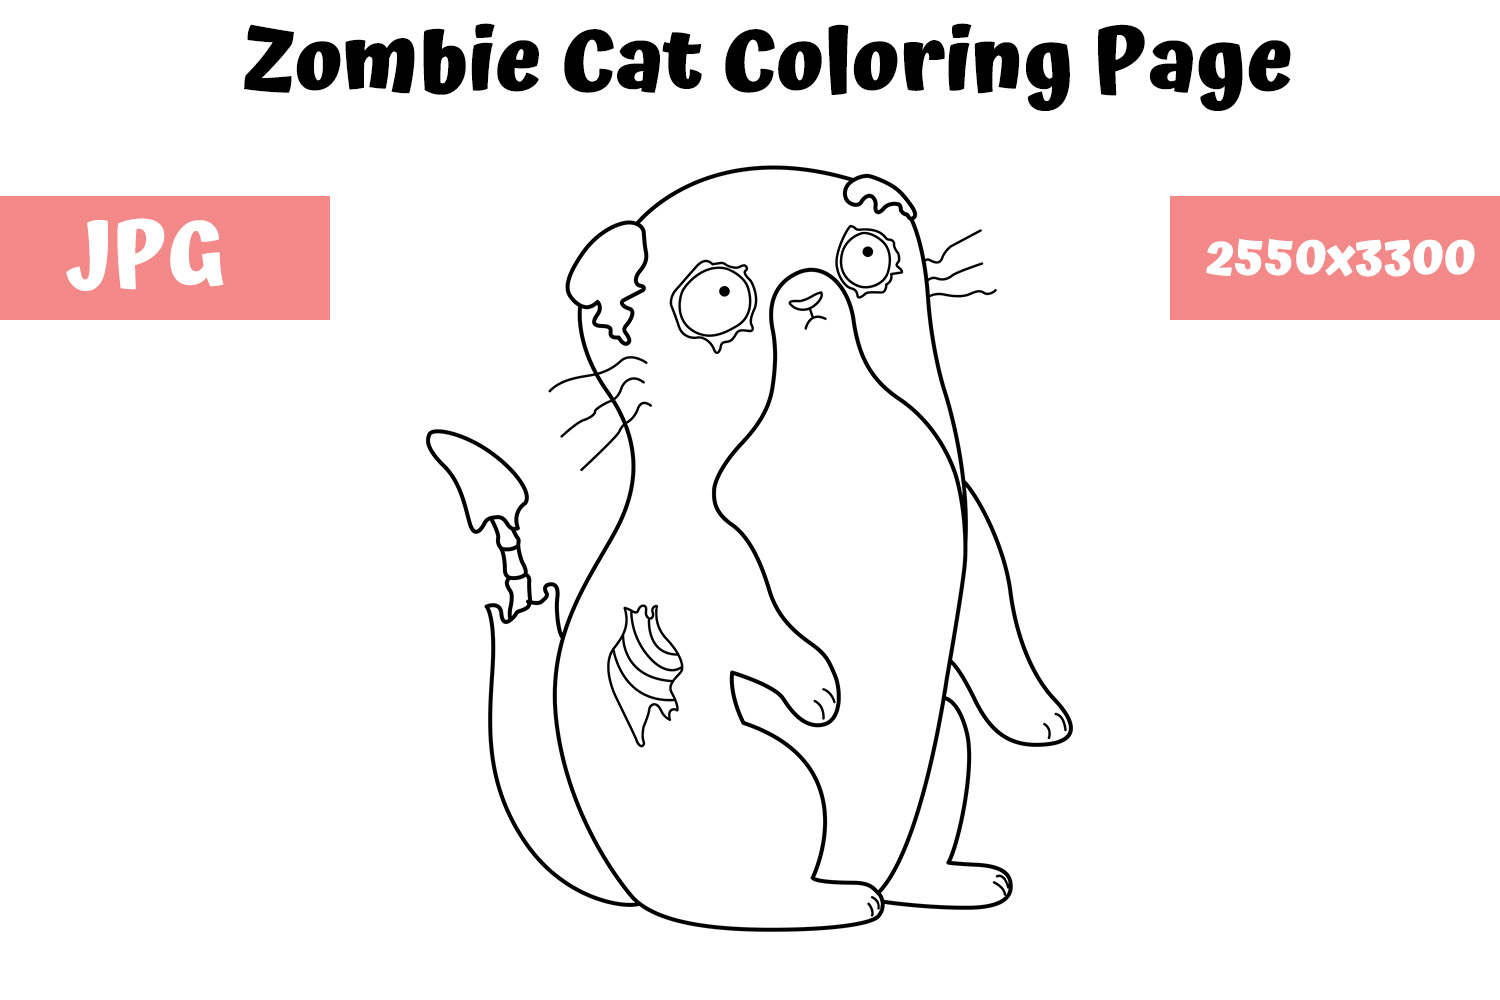 - Zombie Cat Coloring Book Page For Kids (Graphic) By